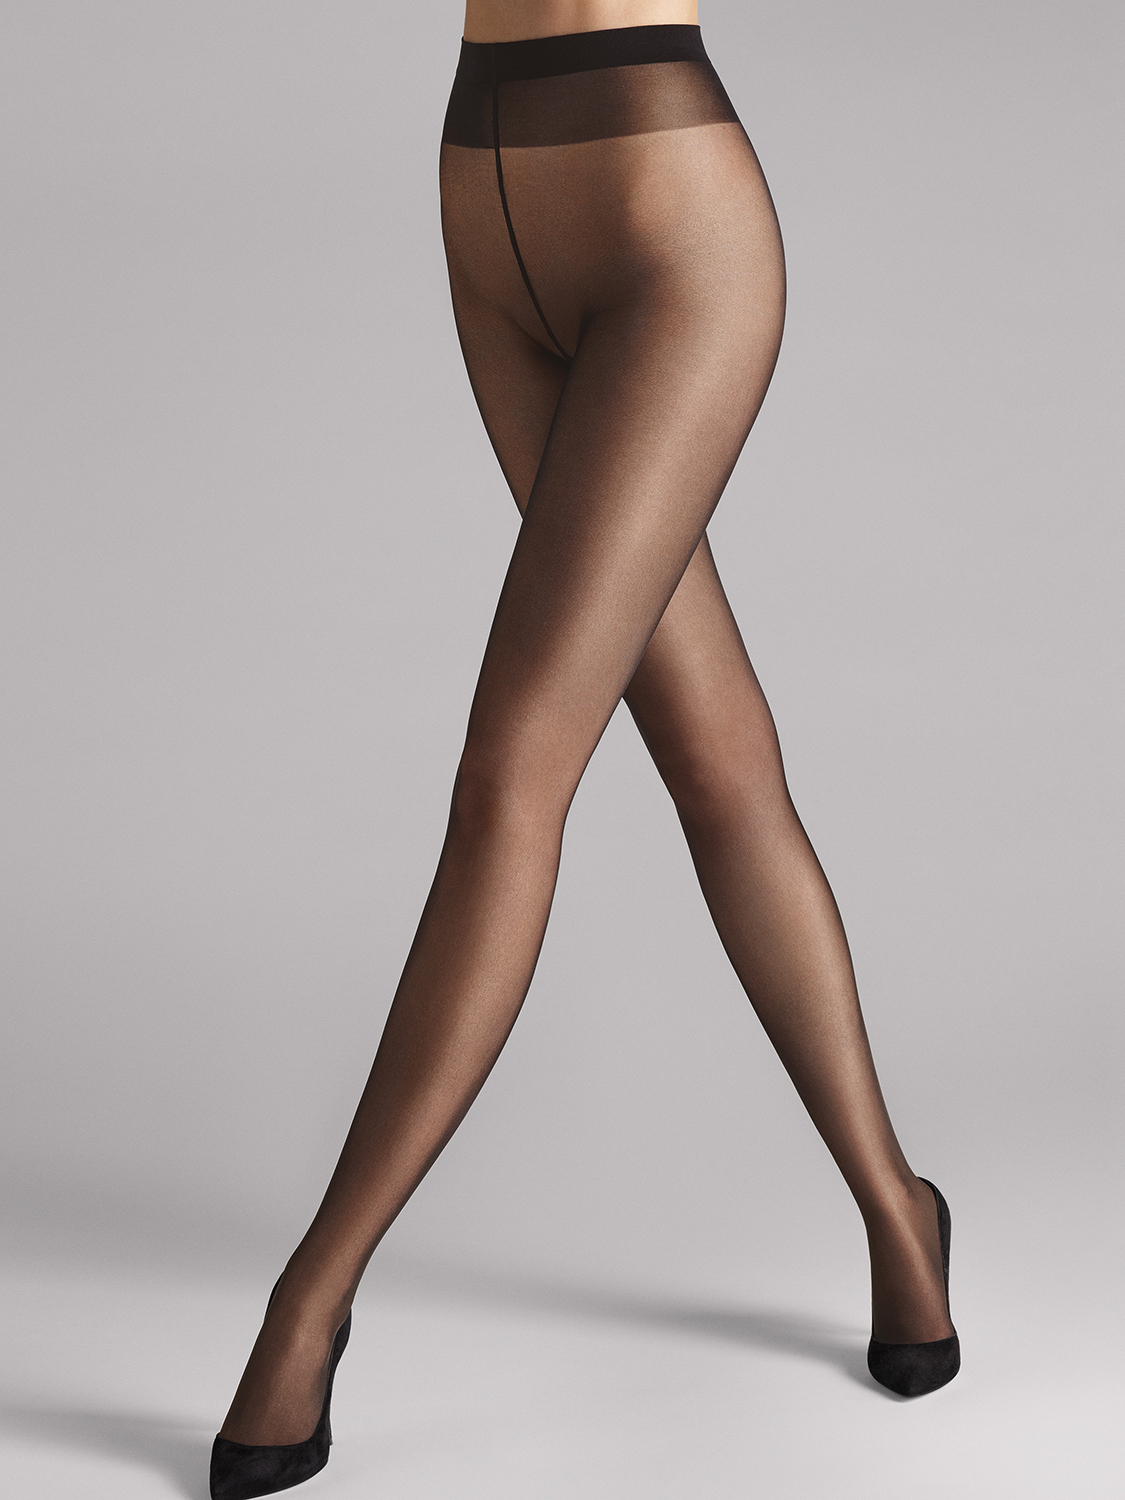 Perfectly 30 tights